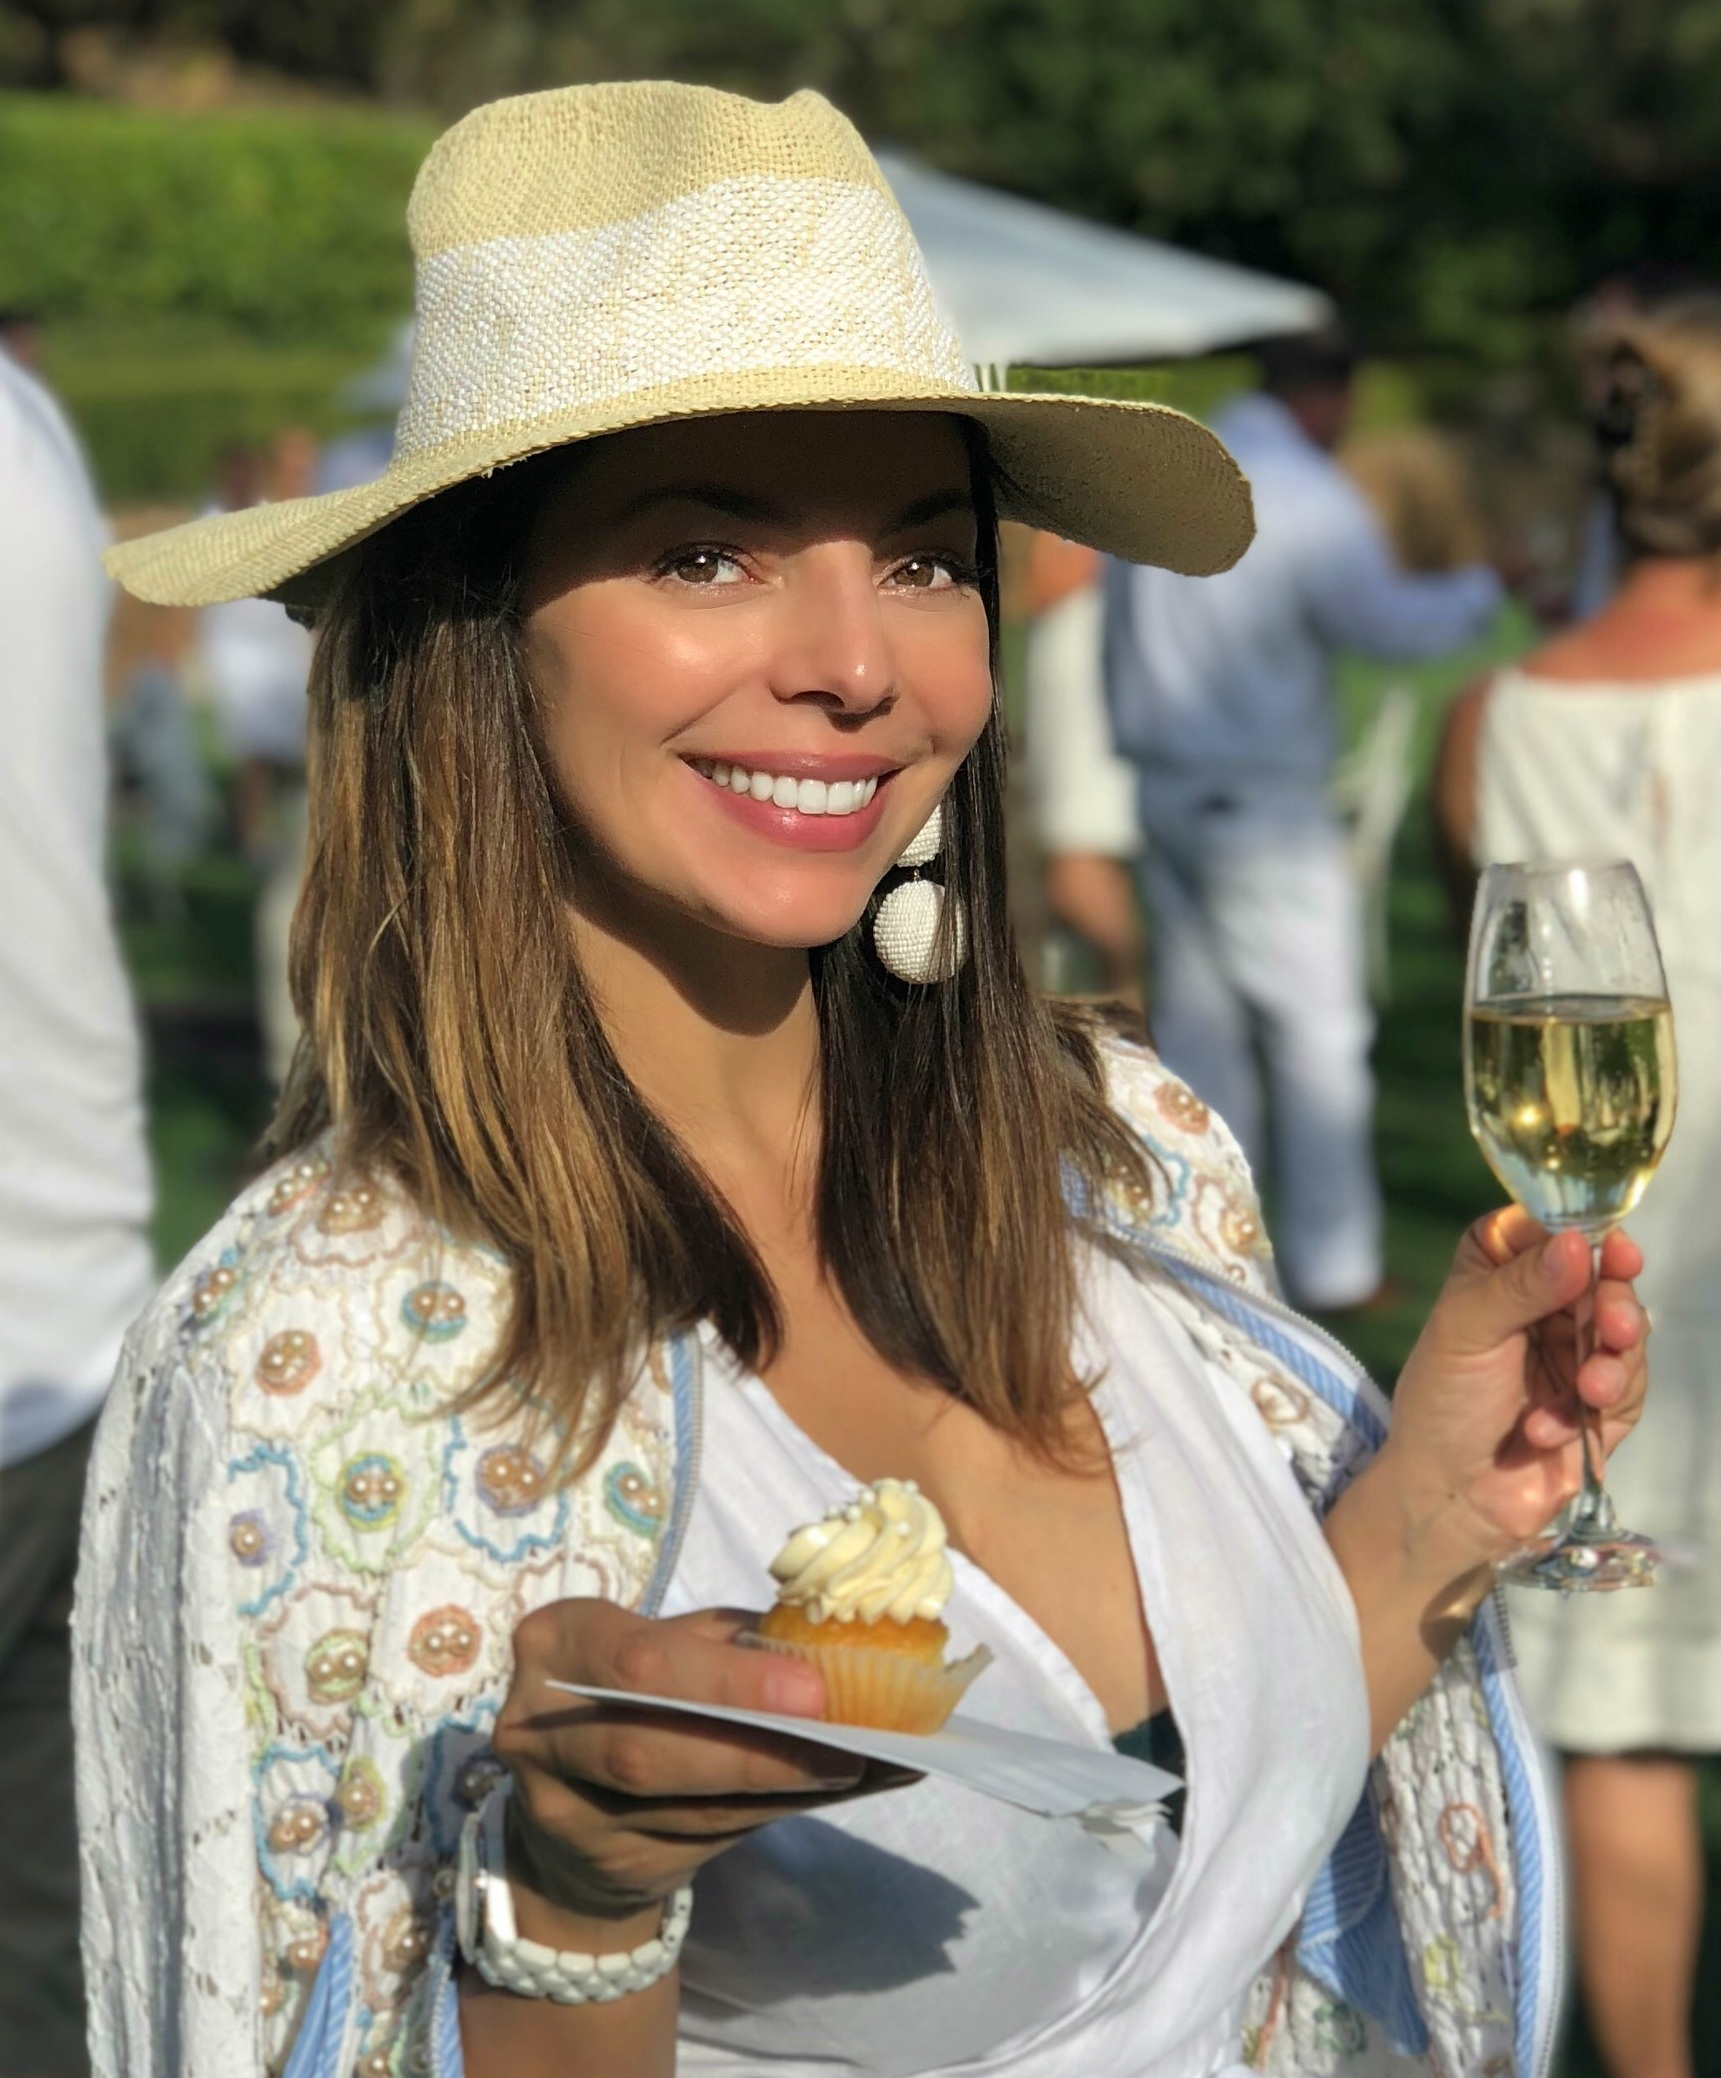 Chloe Bello, Owner - Life's a celebration so toast with Alexandrie!